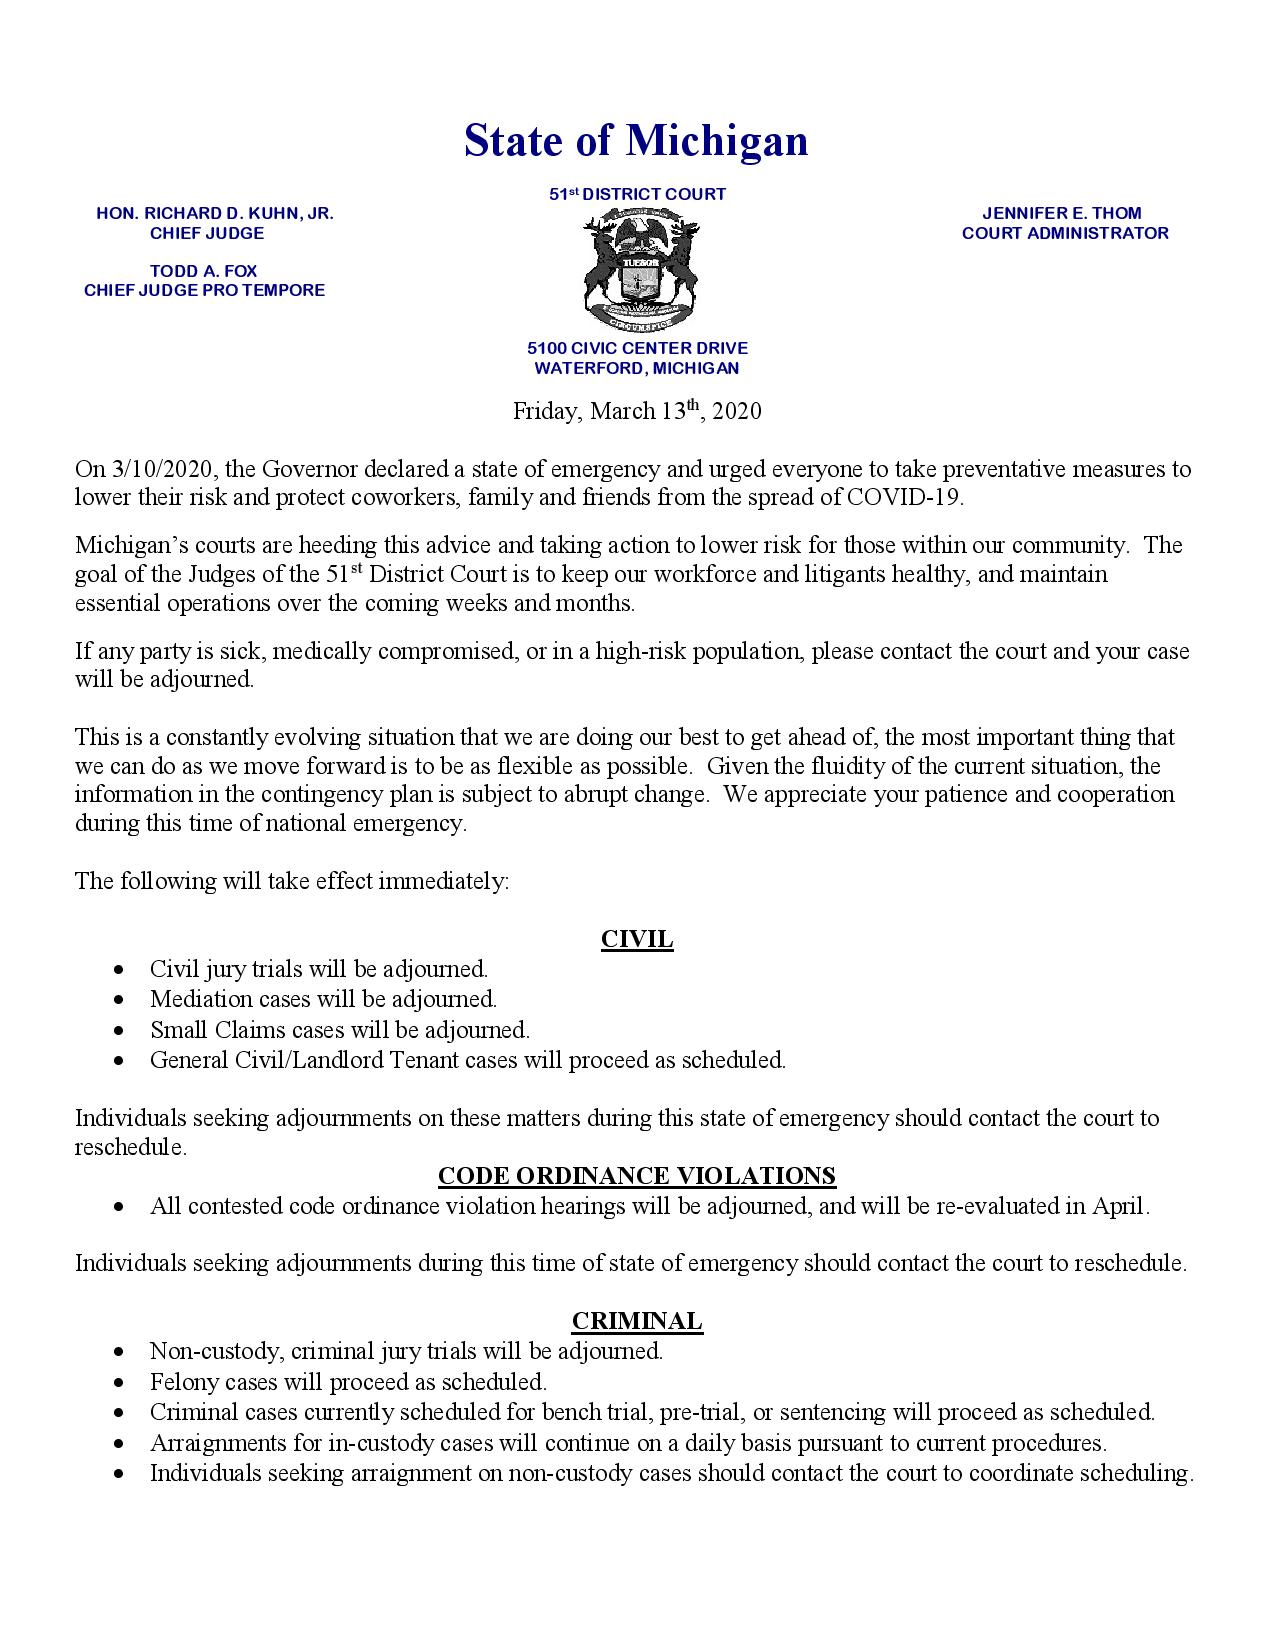 Public Notice COVID-19 - Friday March 13th 2020-page-001